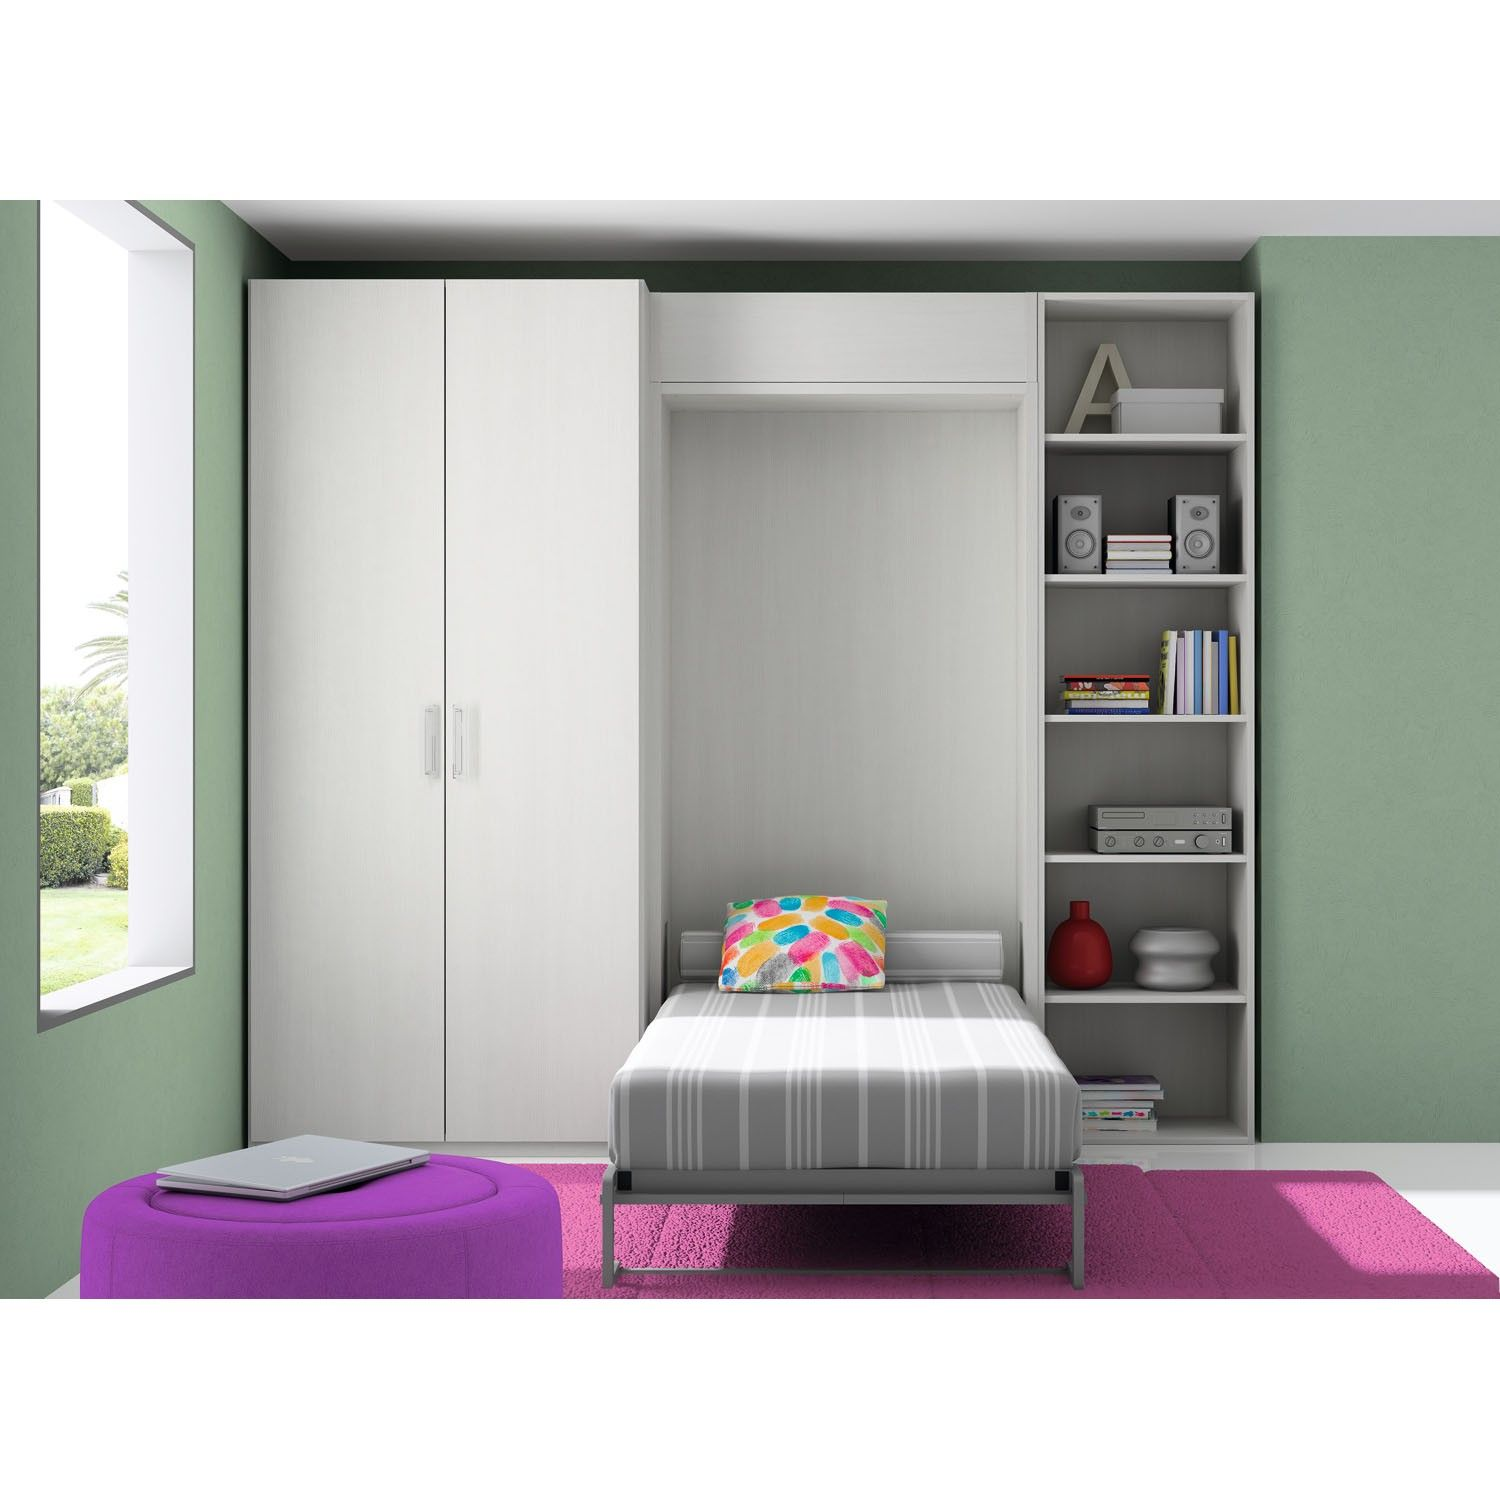 Dormitorio infantil closet en 2019 dissery dormitorios for Ideas para closets pequenos